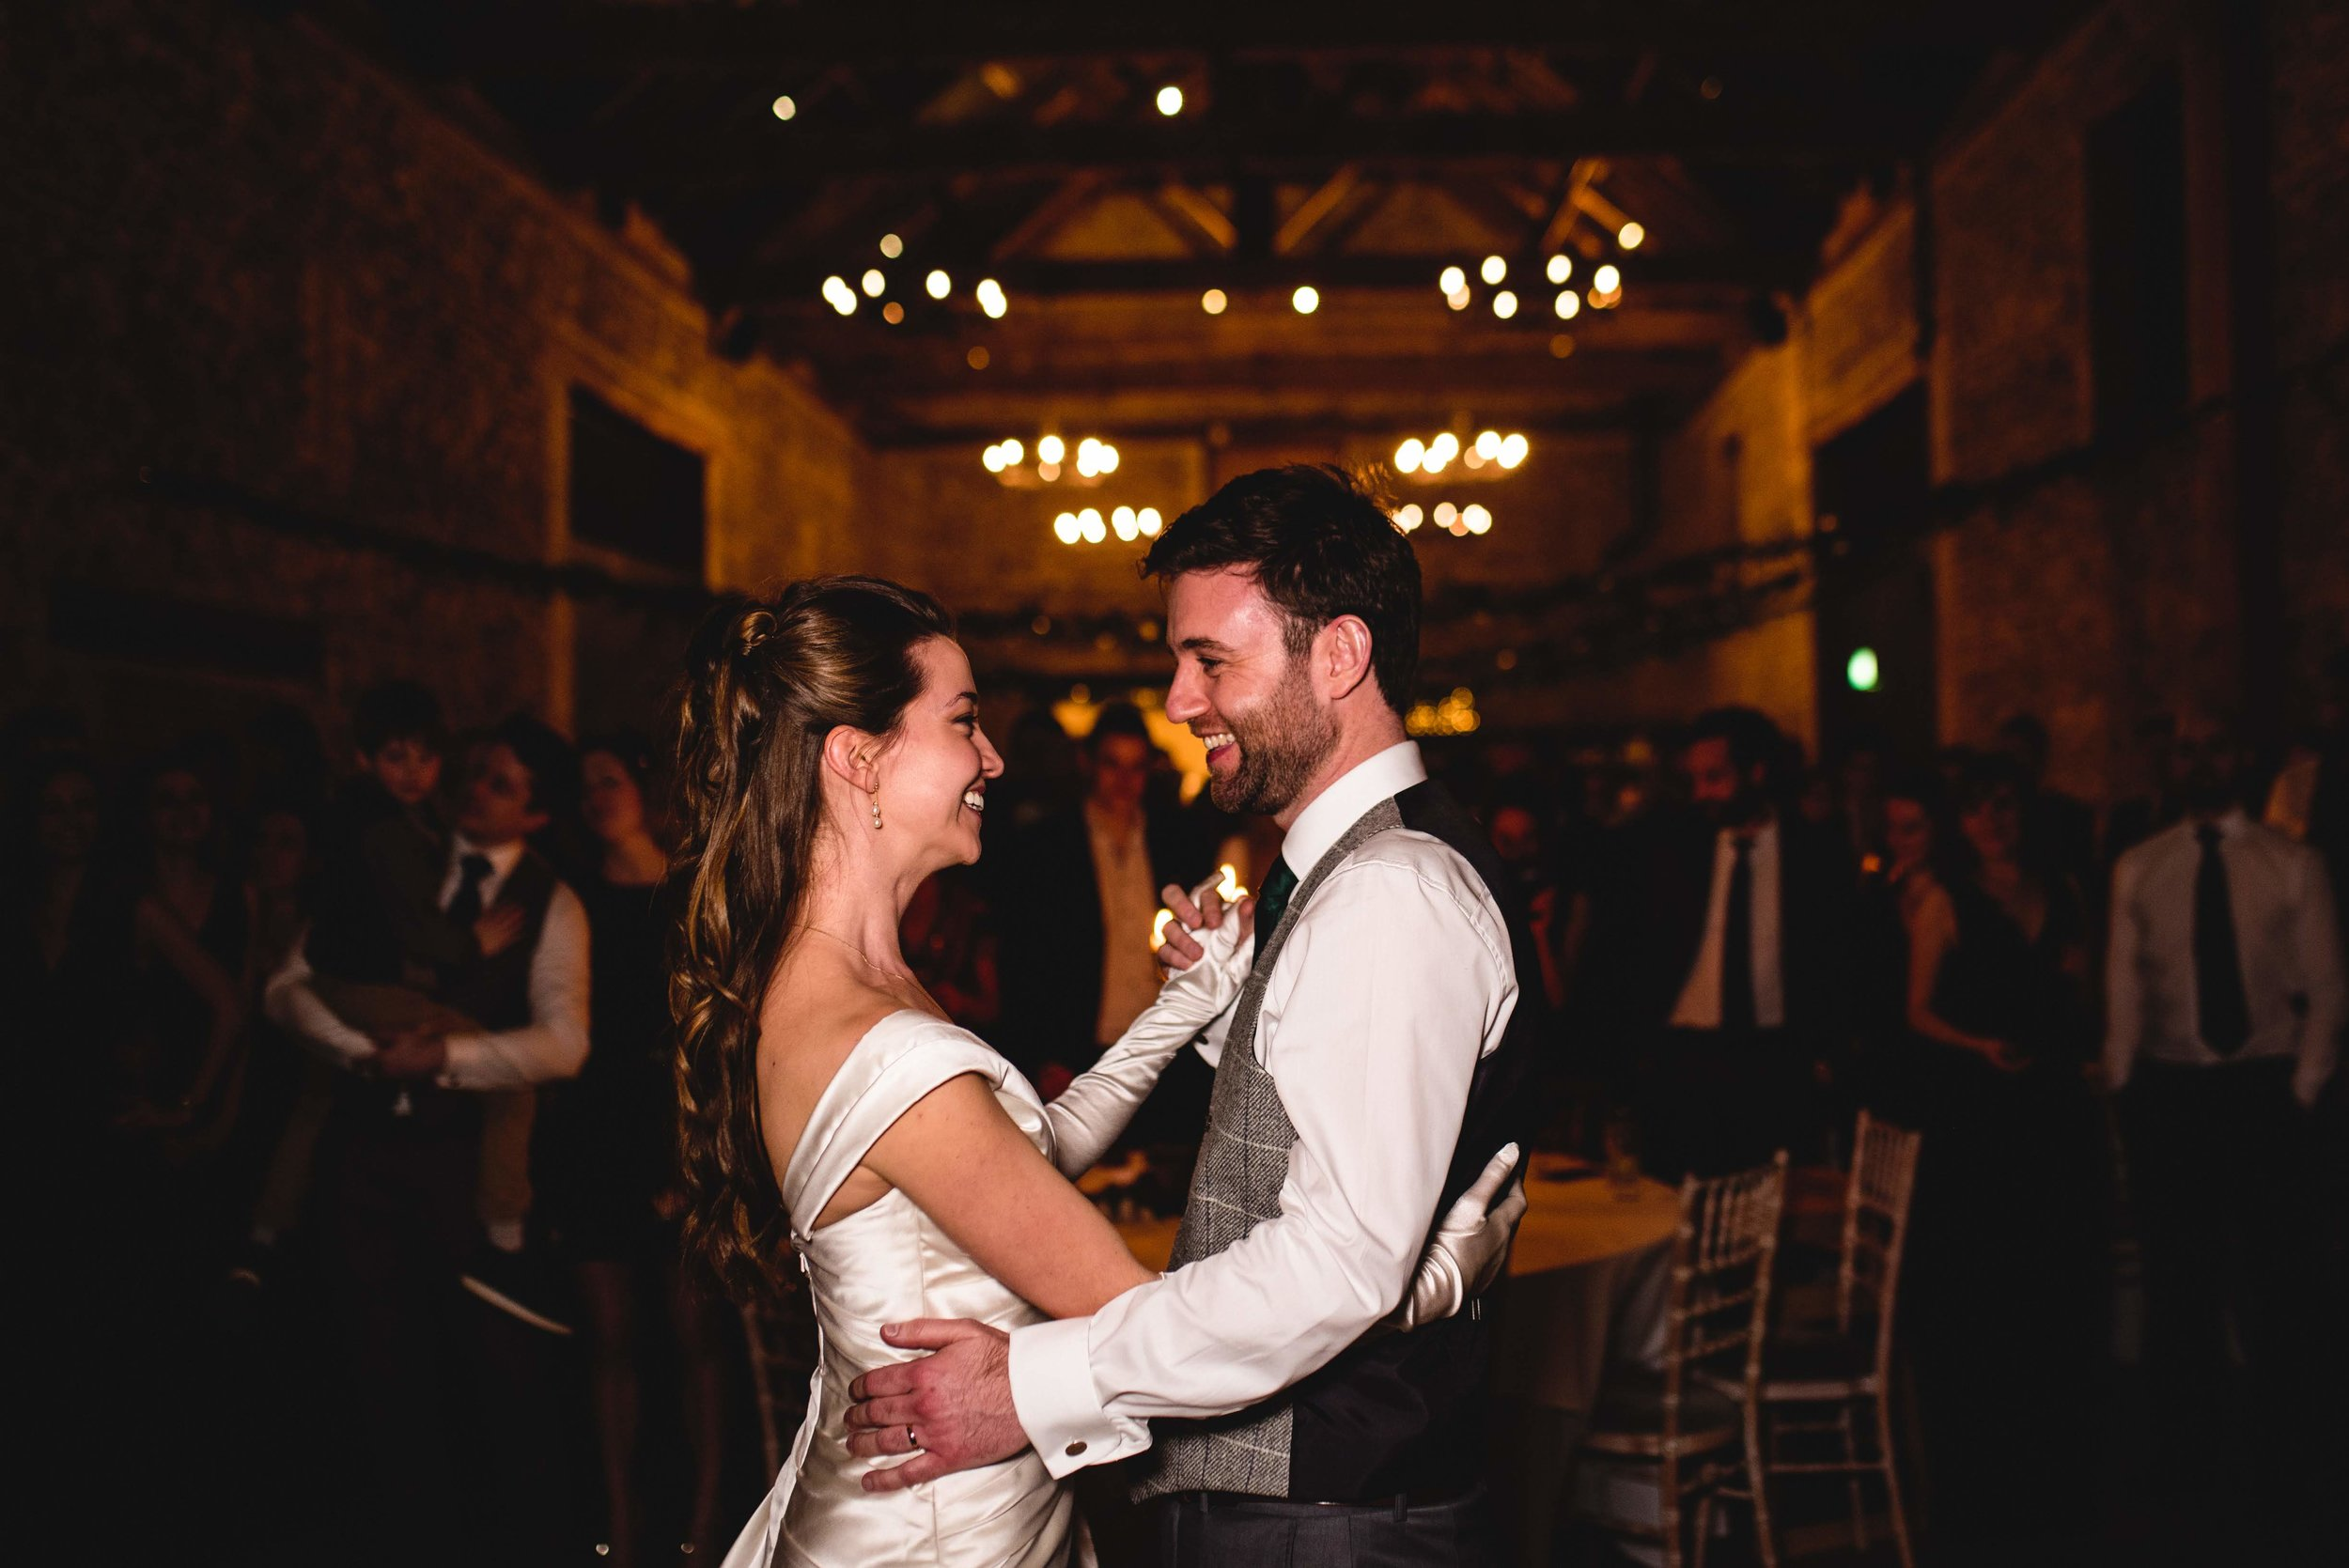 Julia and Ciaran-Colour-16February2019-581-min.jpg